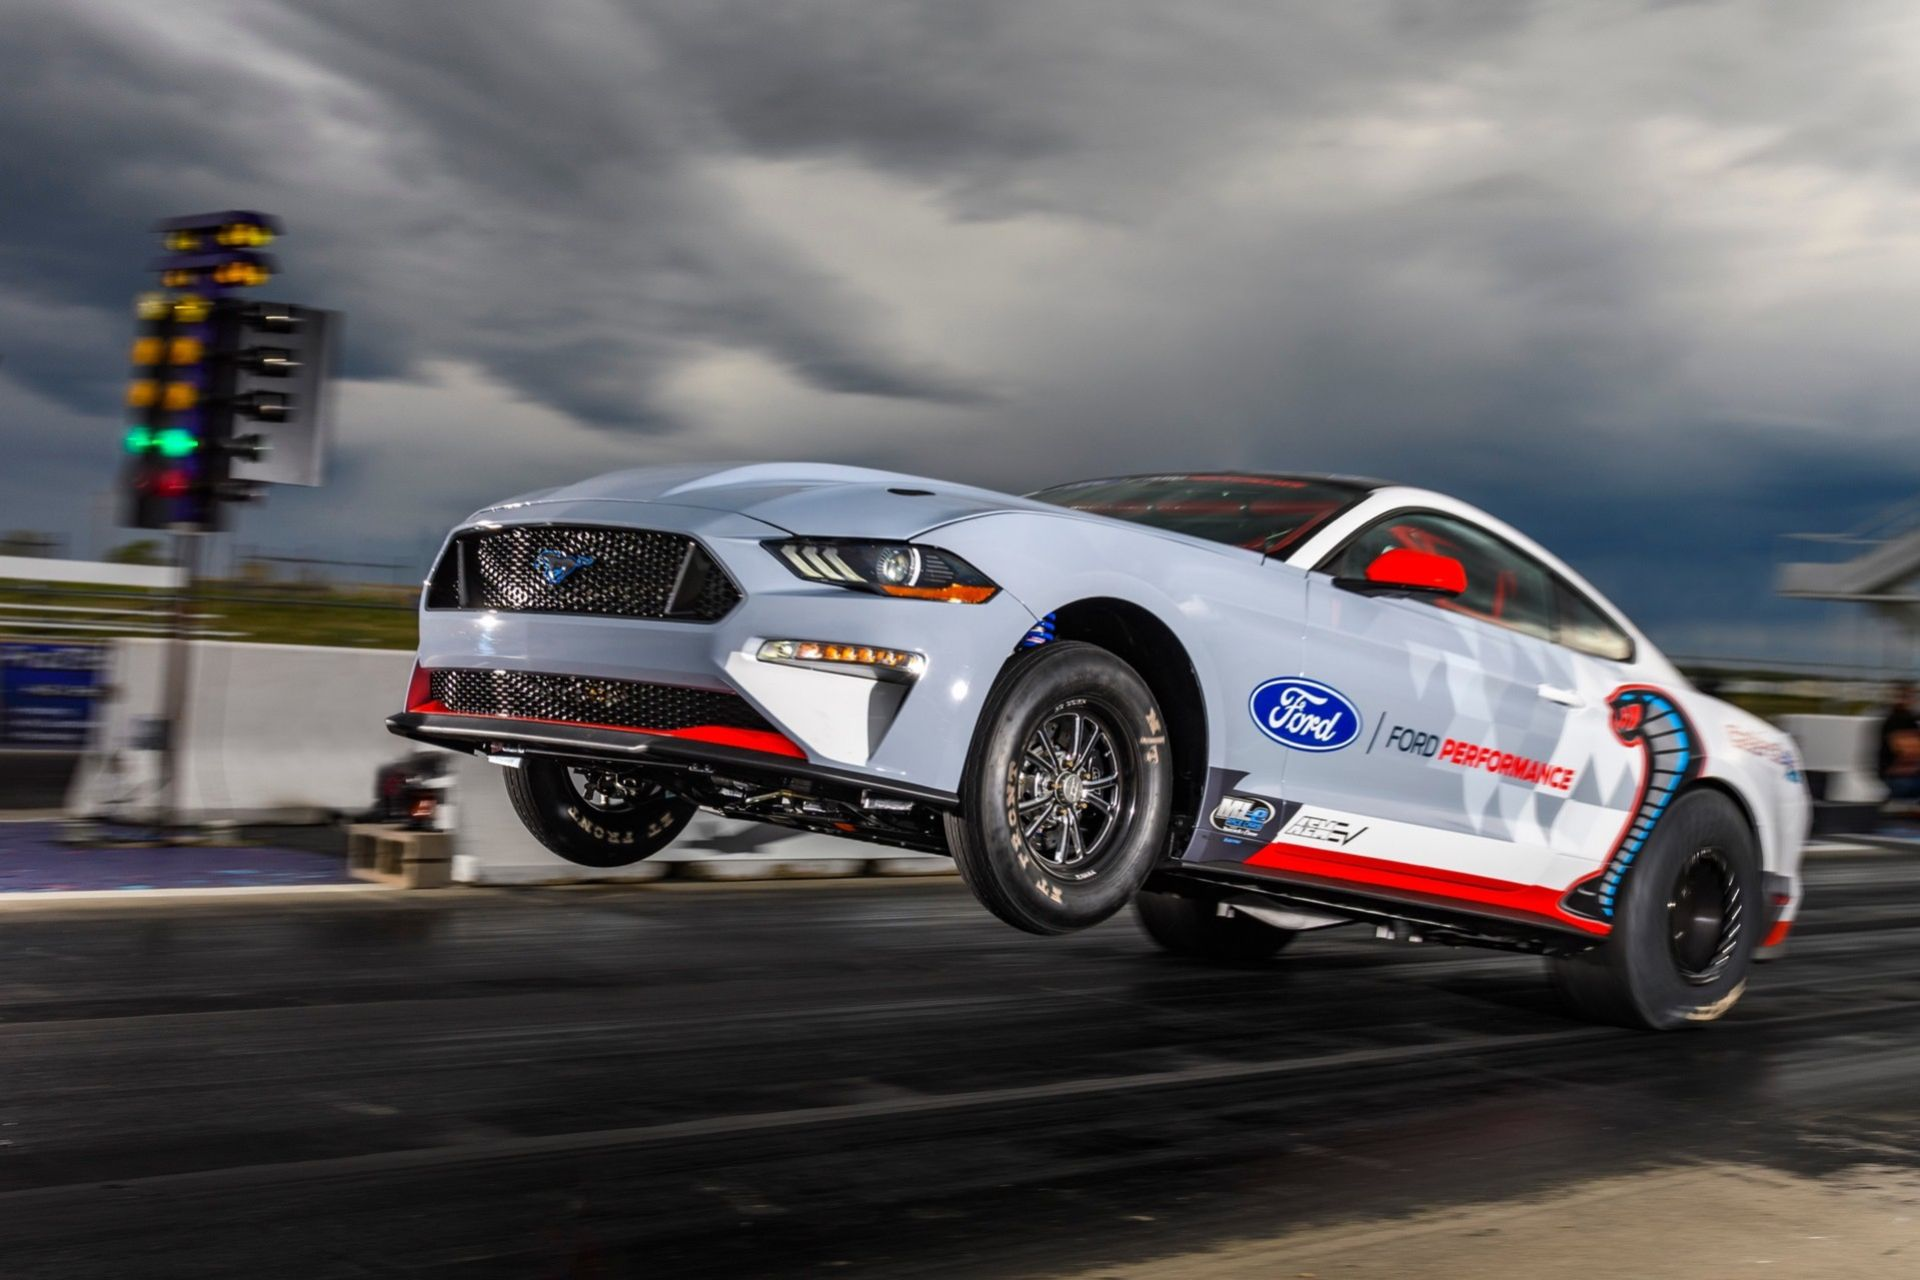 Ford busar med eldriven Mustang-prototyp